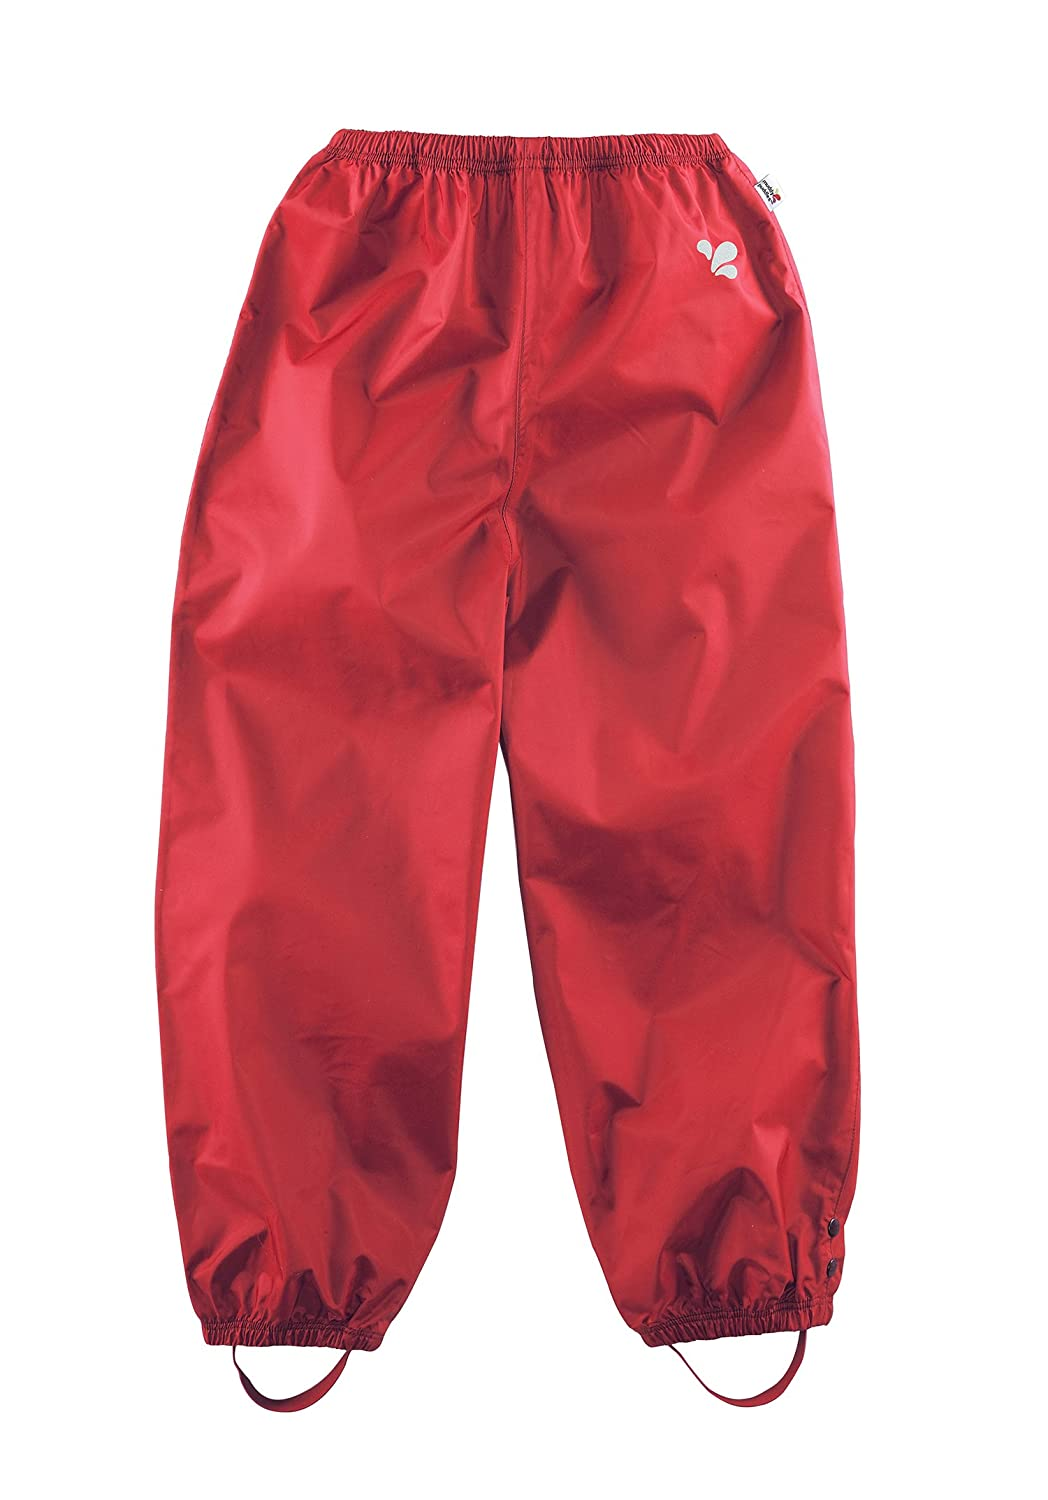 Muddy Puddles Childrens Original Waterproof Trousers